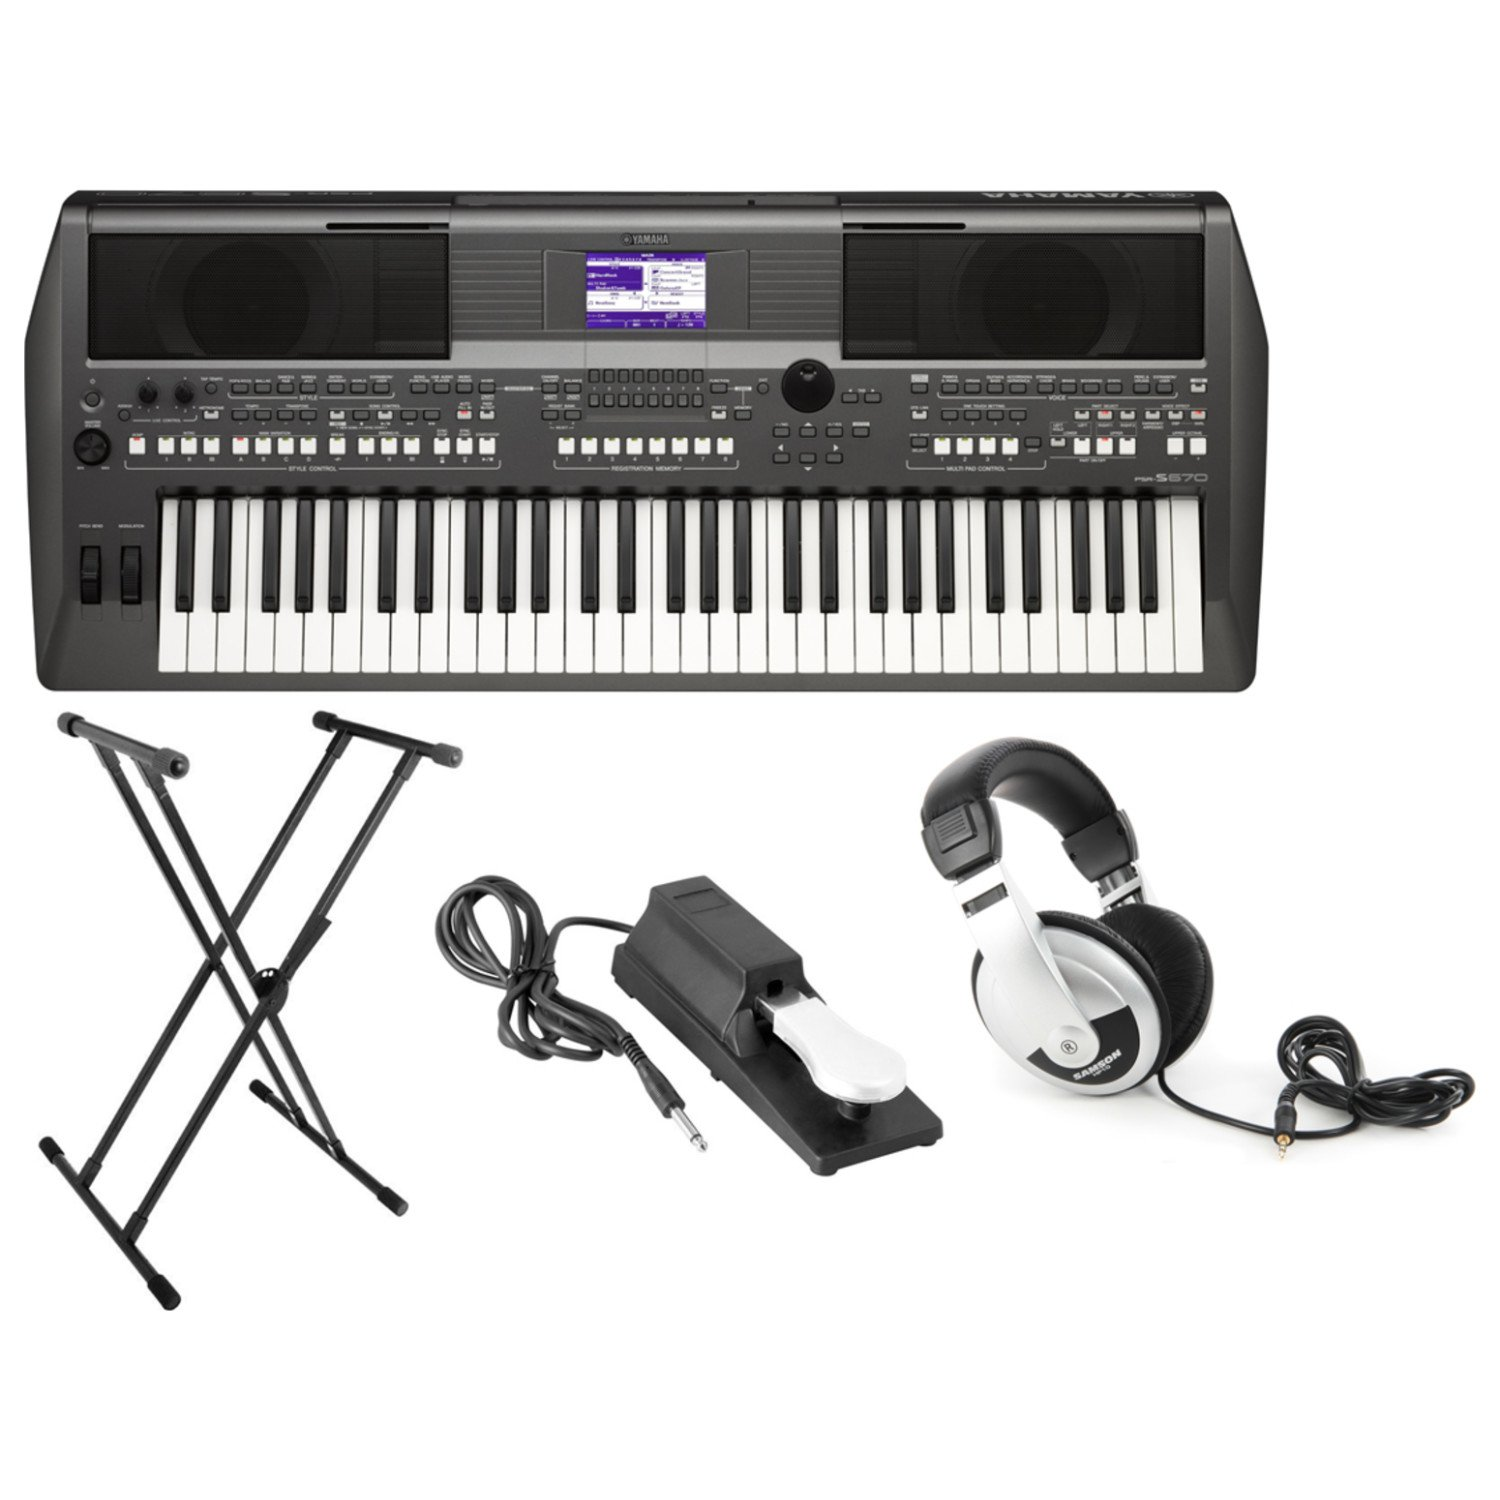 Yamaha PSR-S670 61-Key Arranger Workstation Keyboard with Onboard Stereo Speakers and MegaVoice Articulation Technology with Keyboard Stand, Sustain Pedal and Headphones